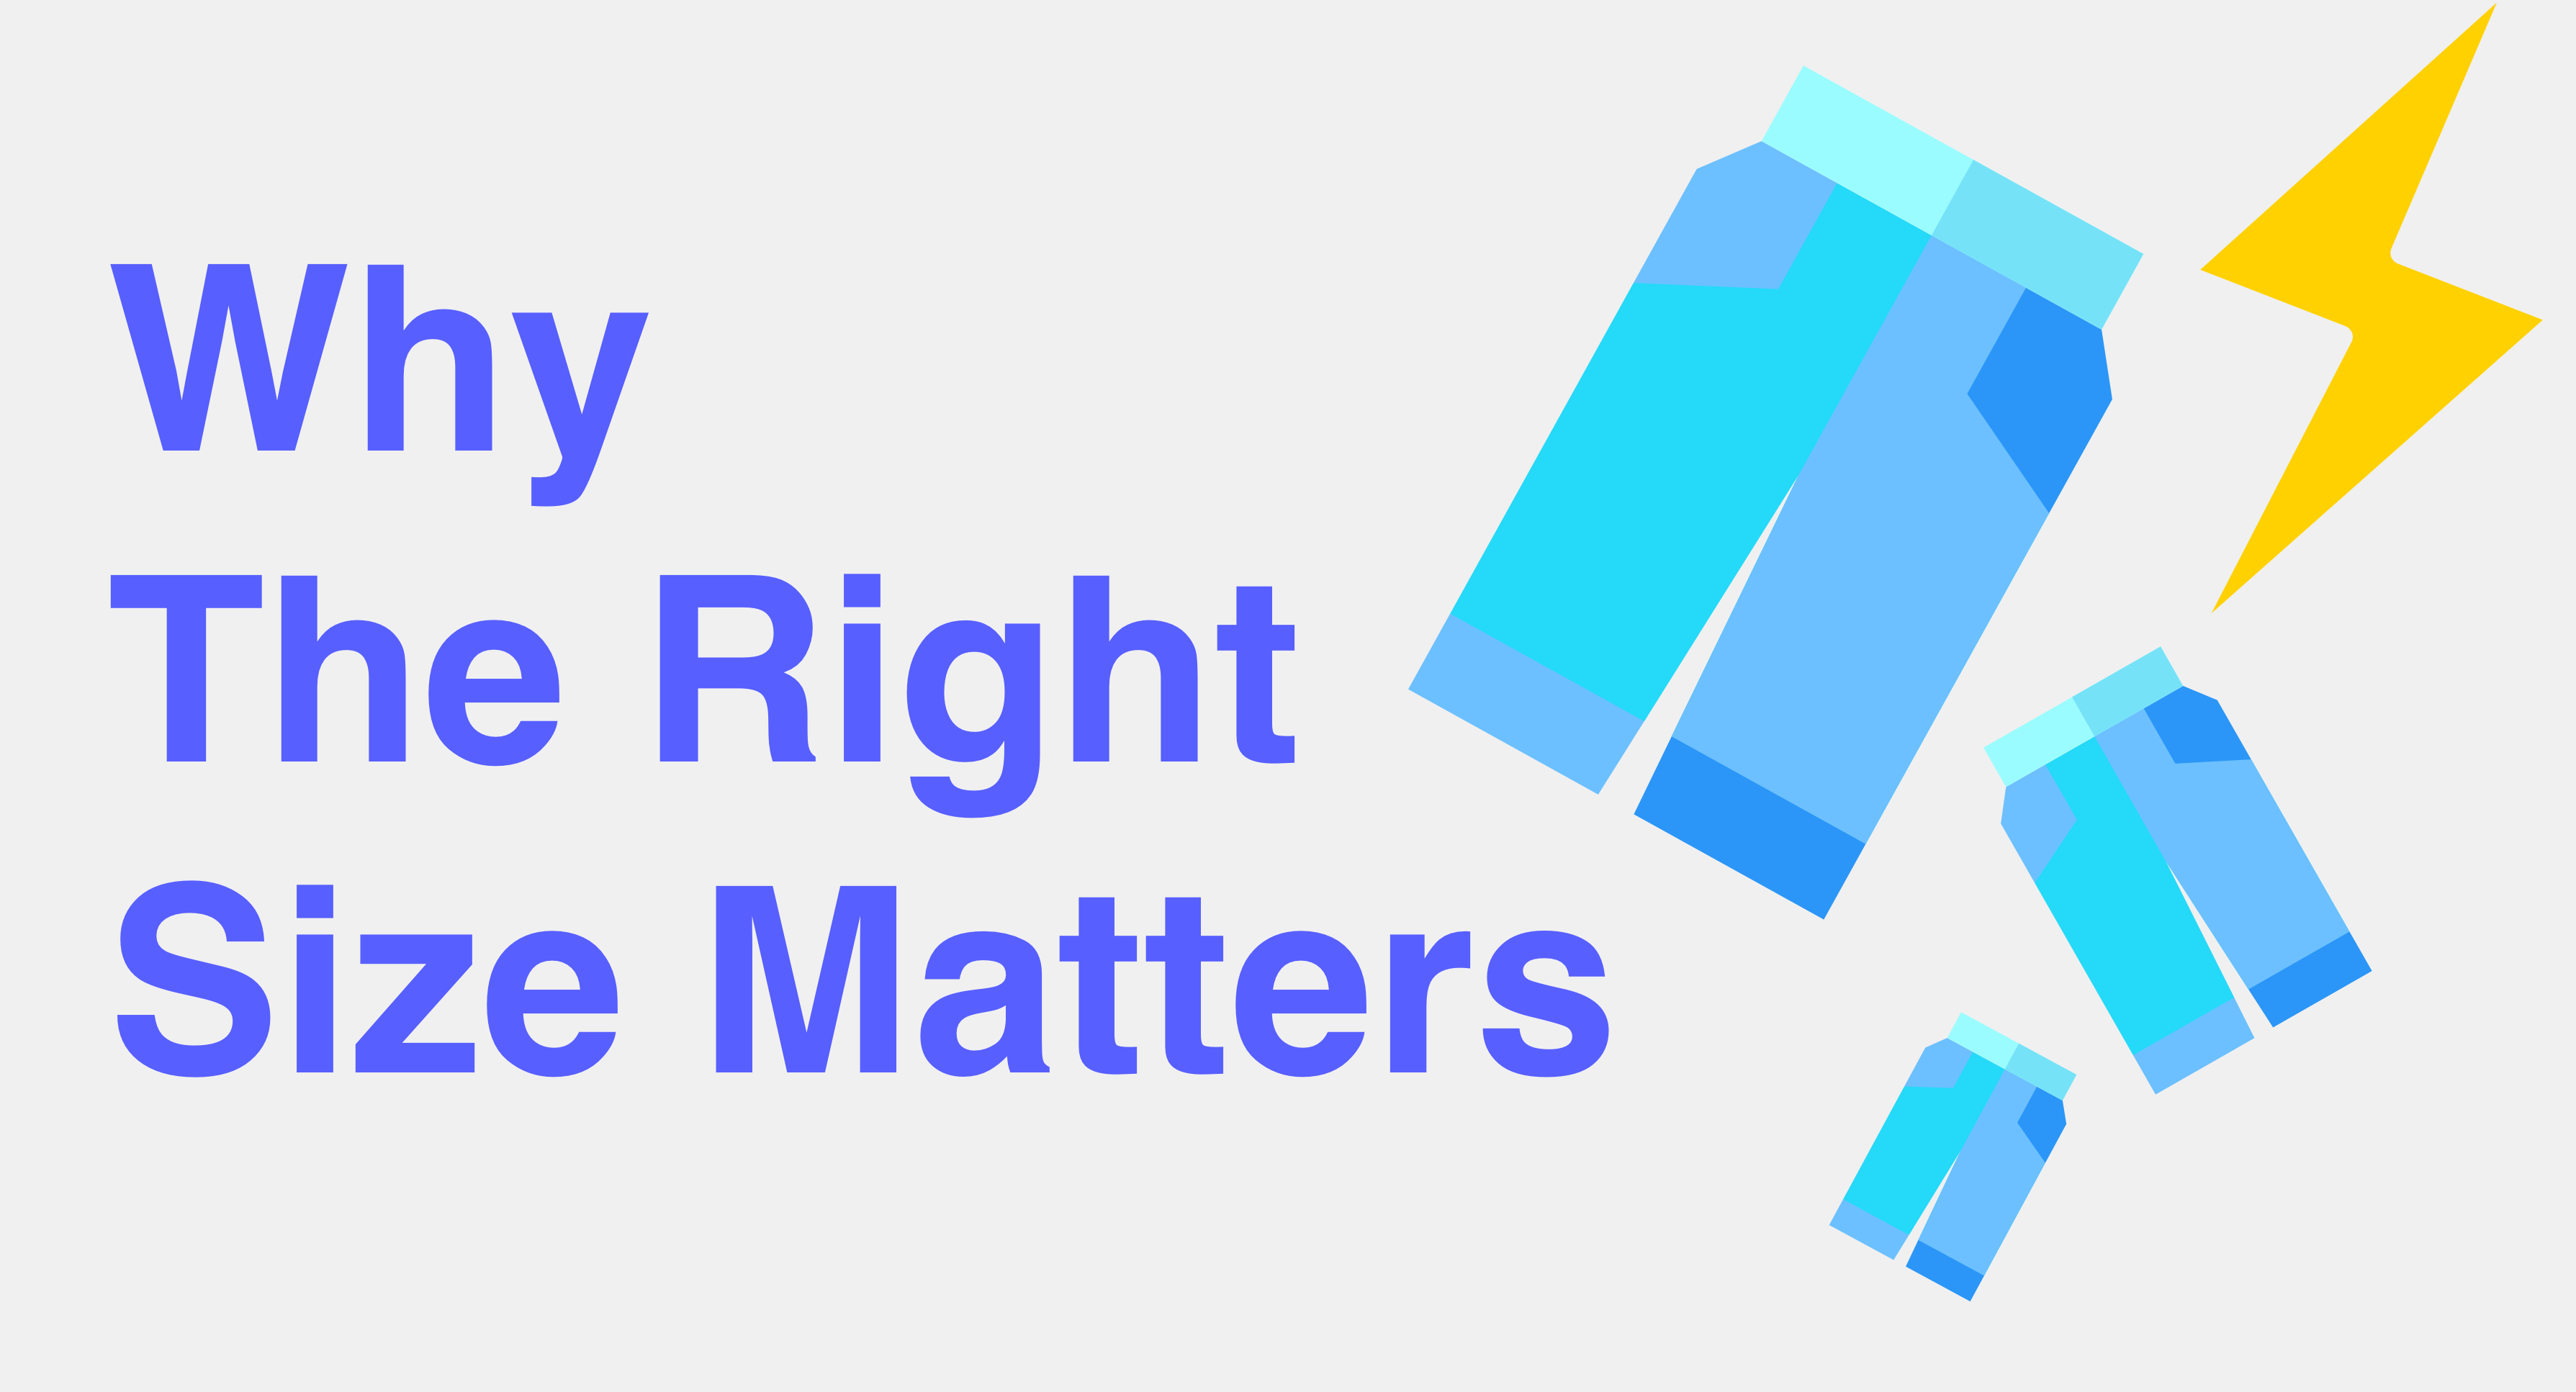 Why the Right Size Matters